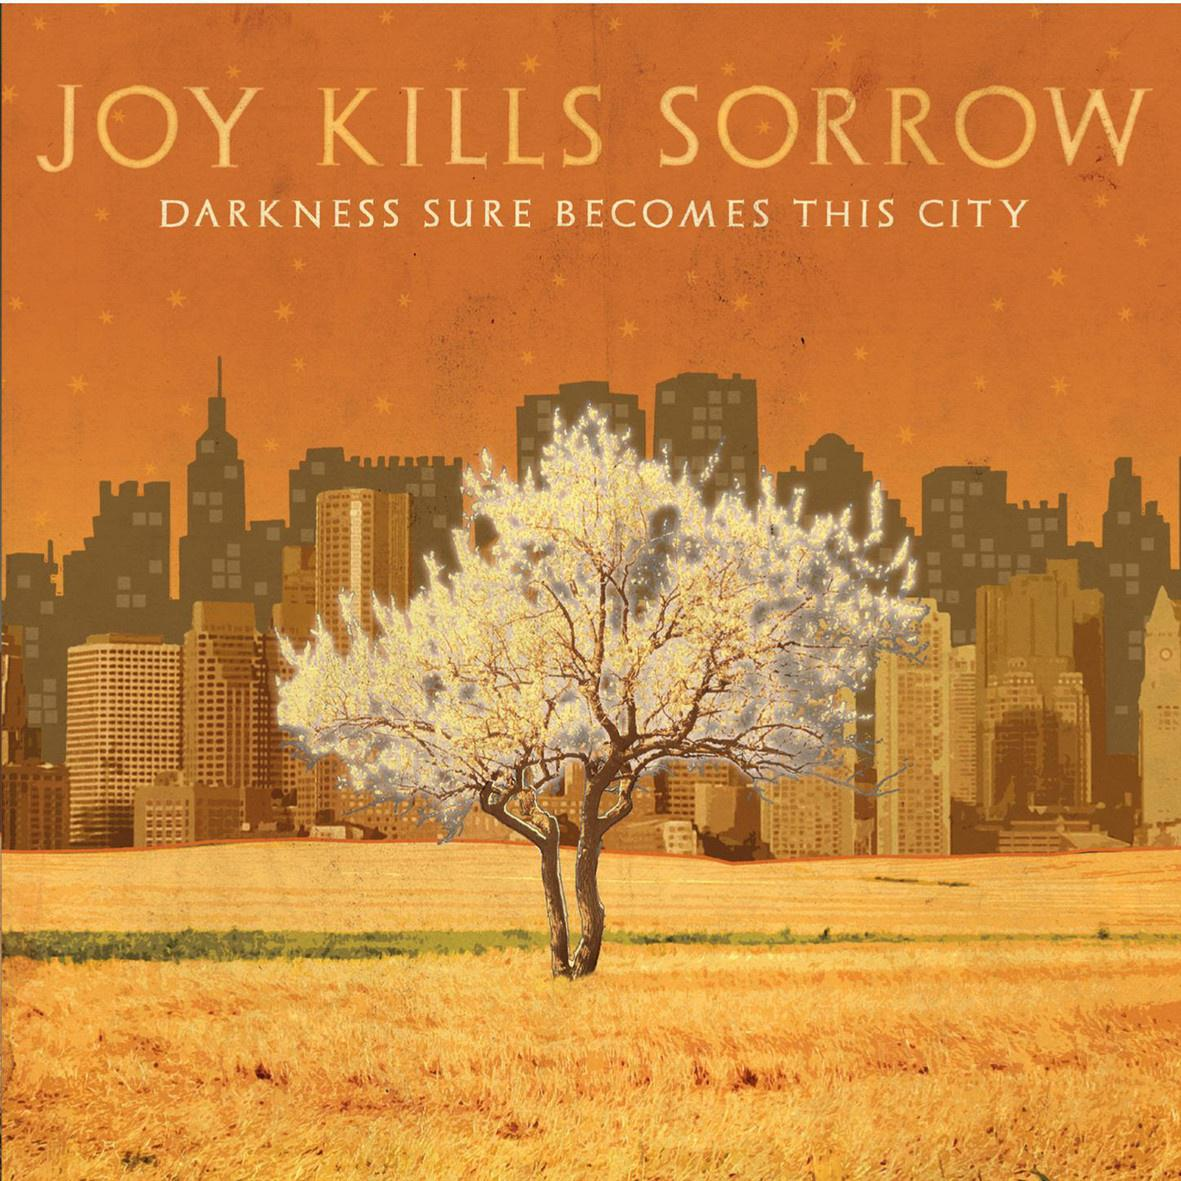 an introduction to the joy of sorrow Check out from sorrow into joy (an introduction) by dan jackson on amazon music stream ad-free or purchase cd's and mp3s now on amazoncom.